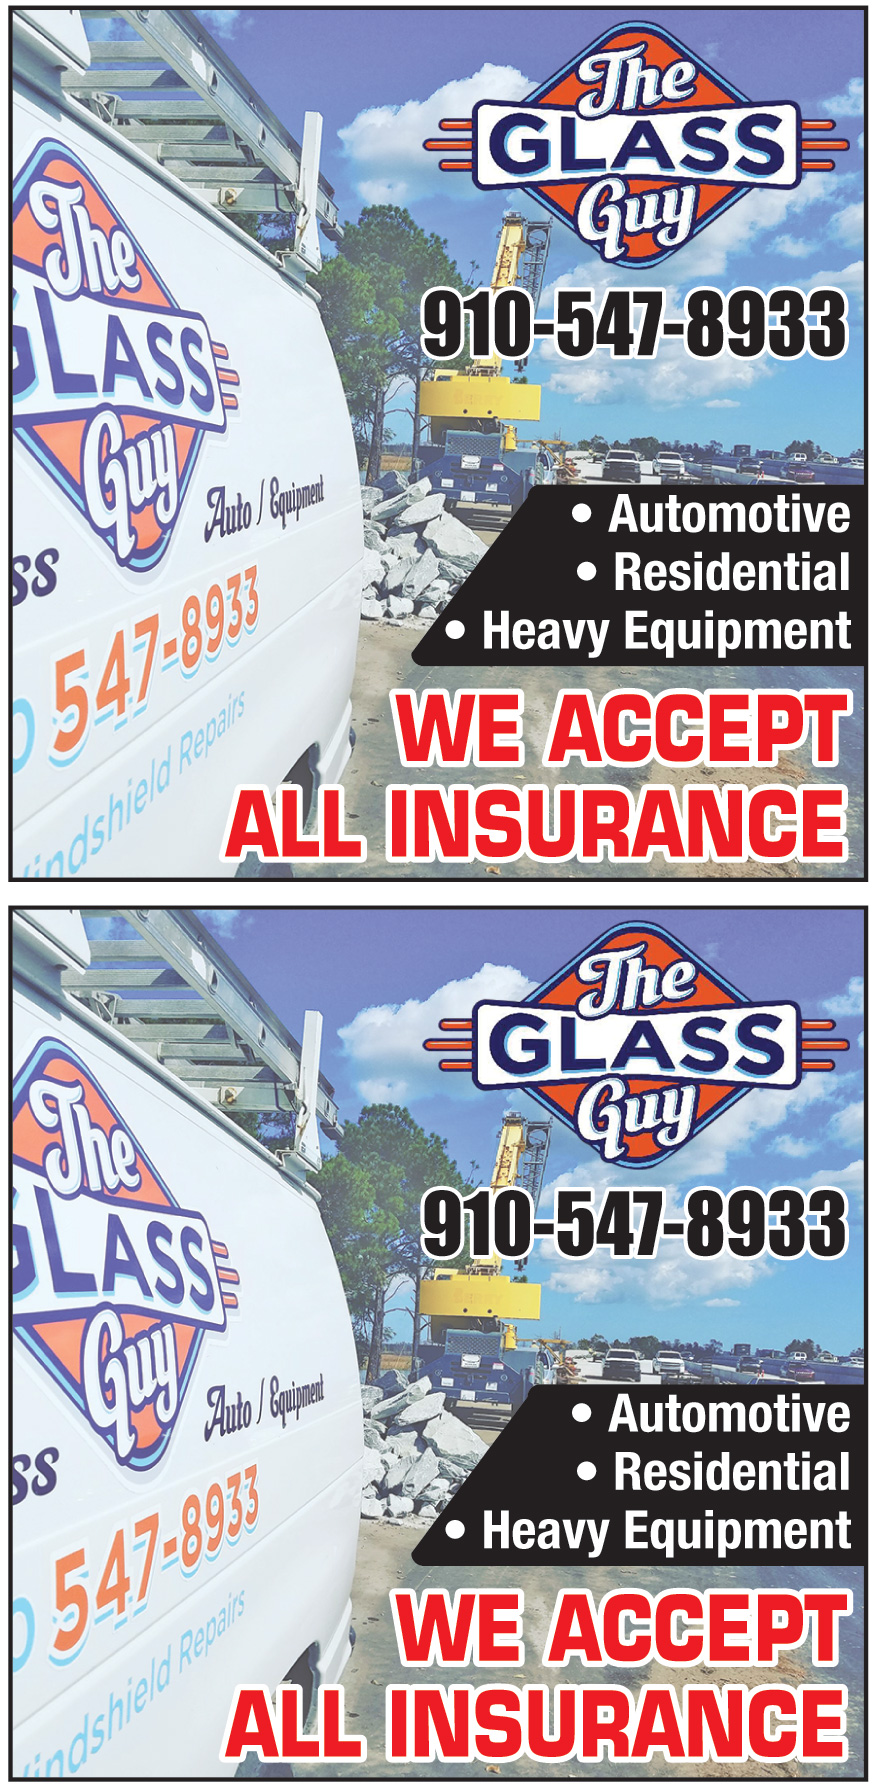 THE GLASS GUY LLC